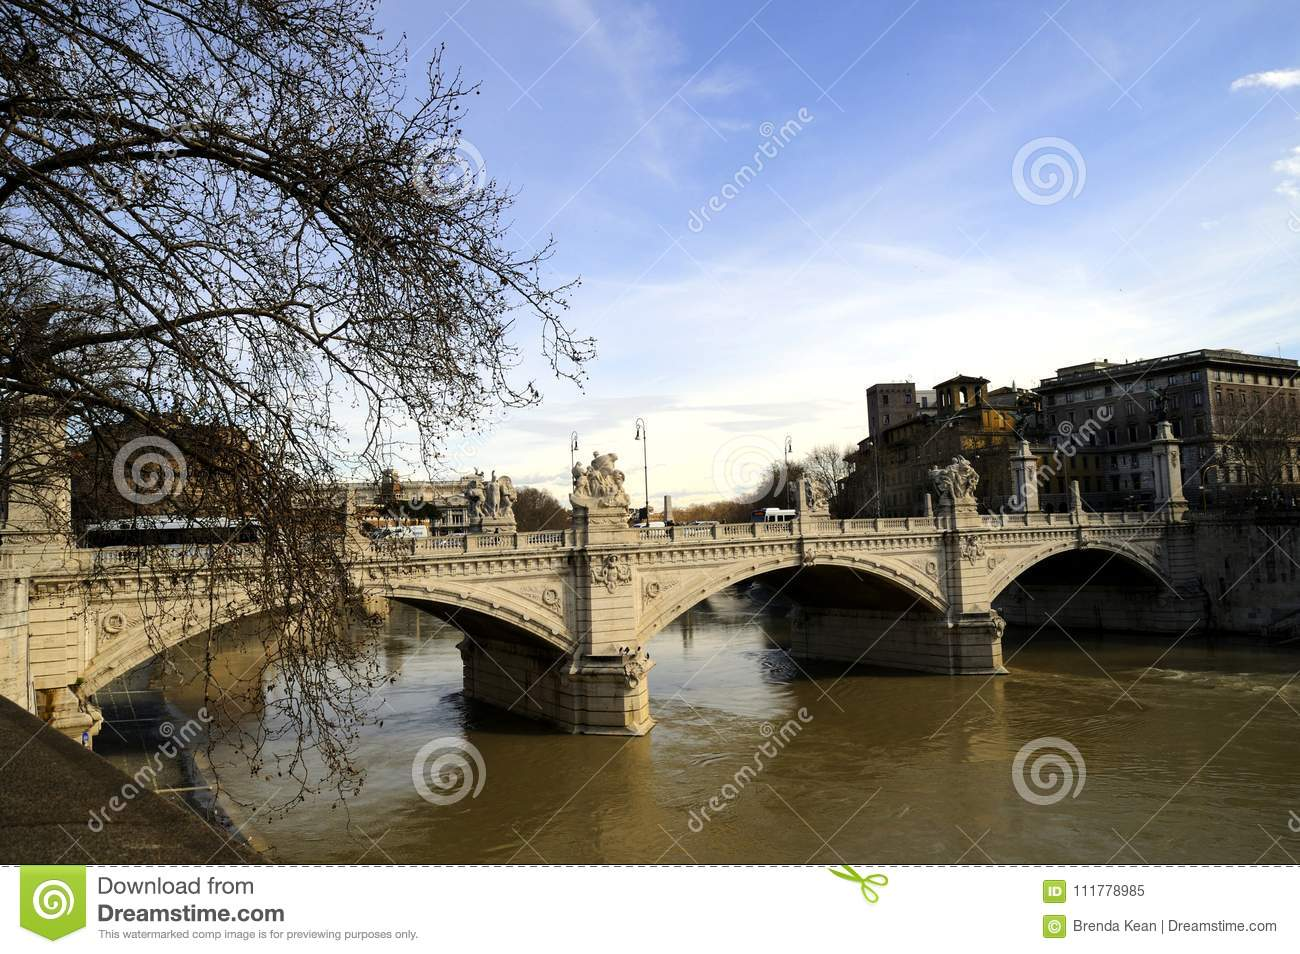 One of the lovely bridges over the River Tiber in Rome